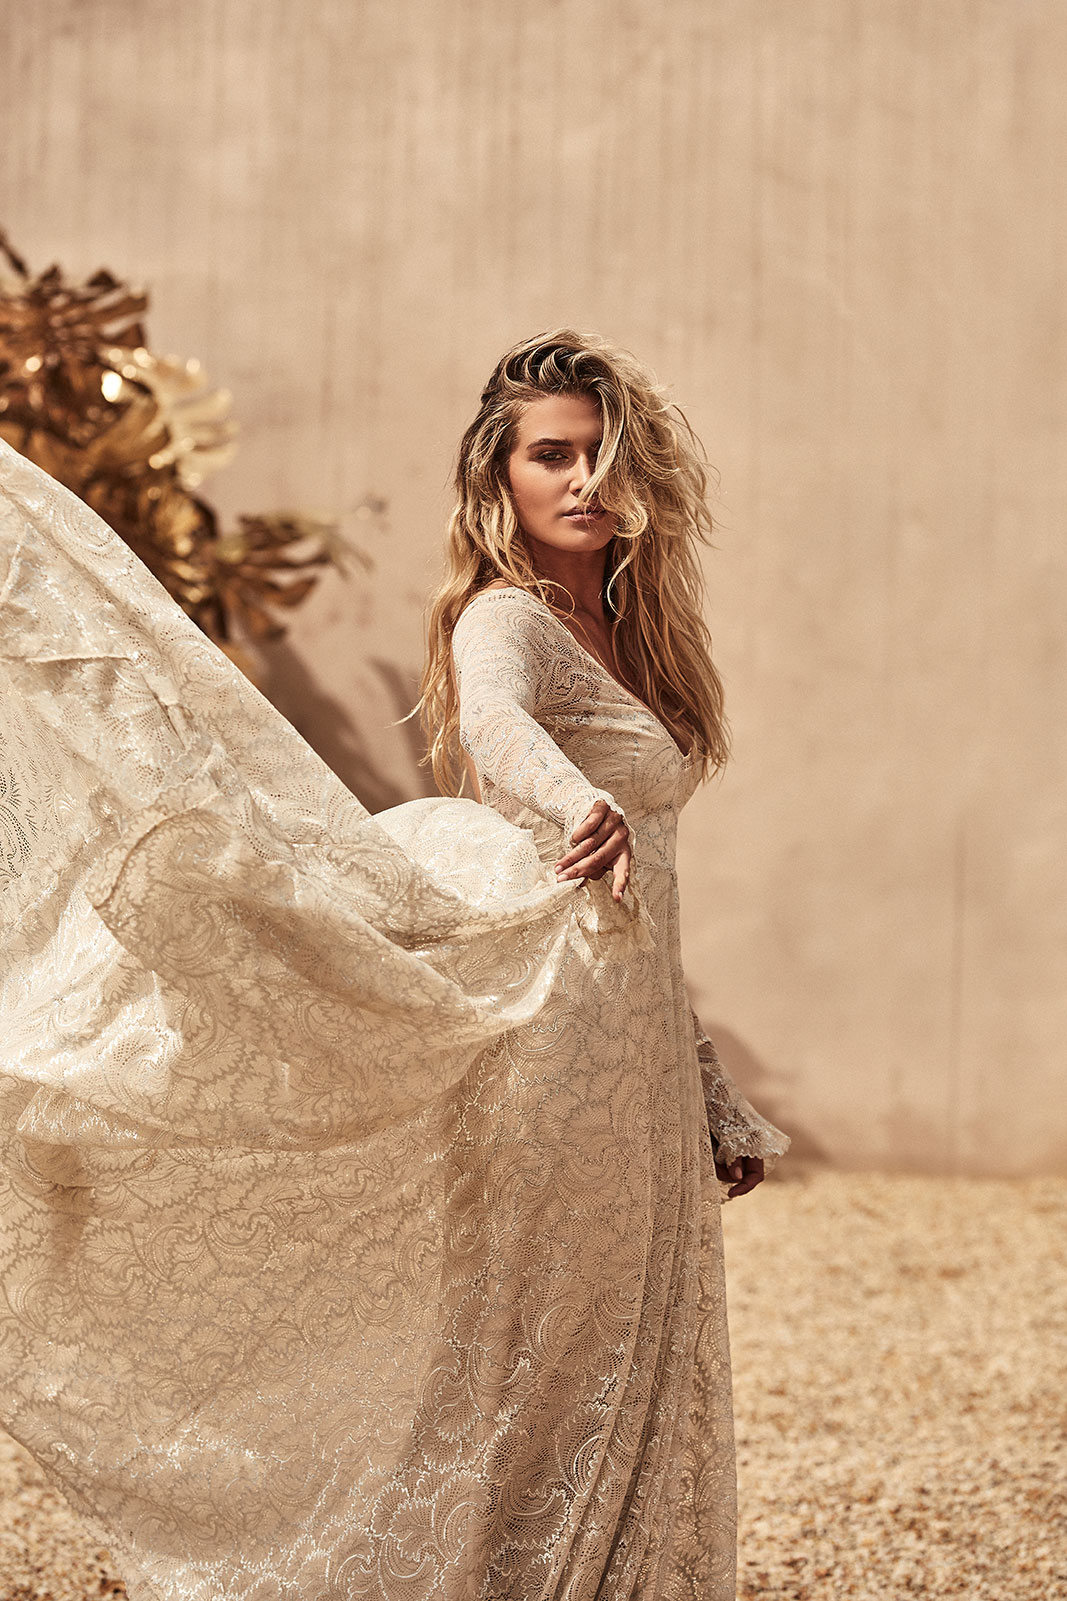 Bea-Gown-Grace-Loves-Lace-La-Bamba-Collection-5-Low-Res.jpg